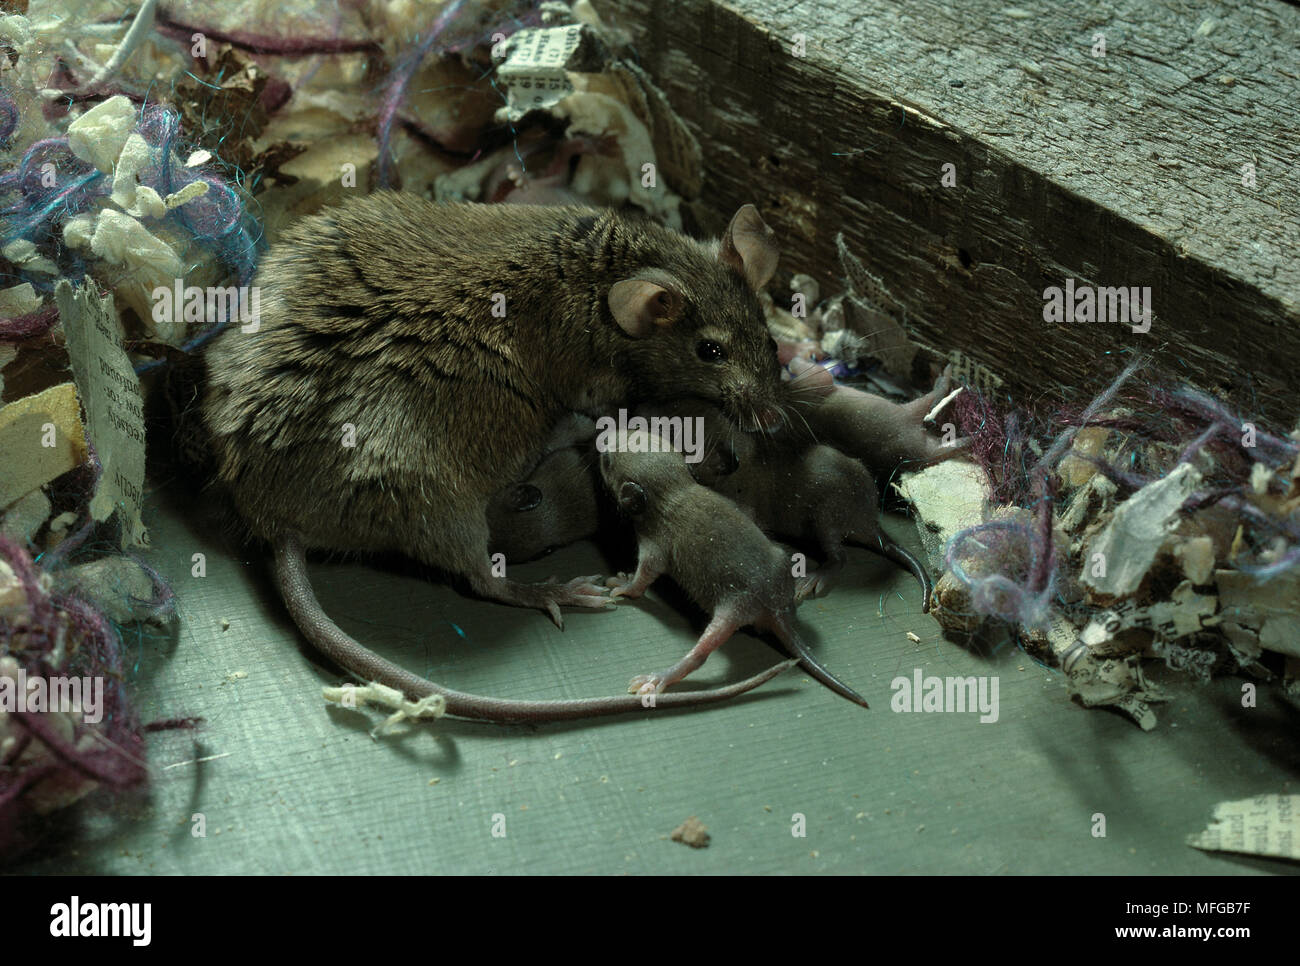 HOUSE MOUSE female Mus musculus suckling young - Stock Image